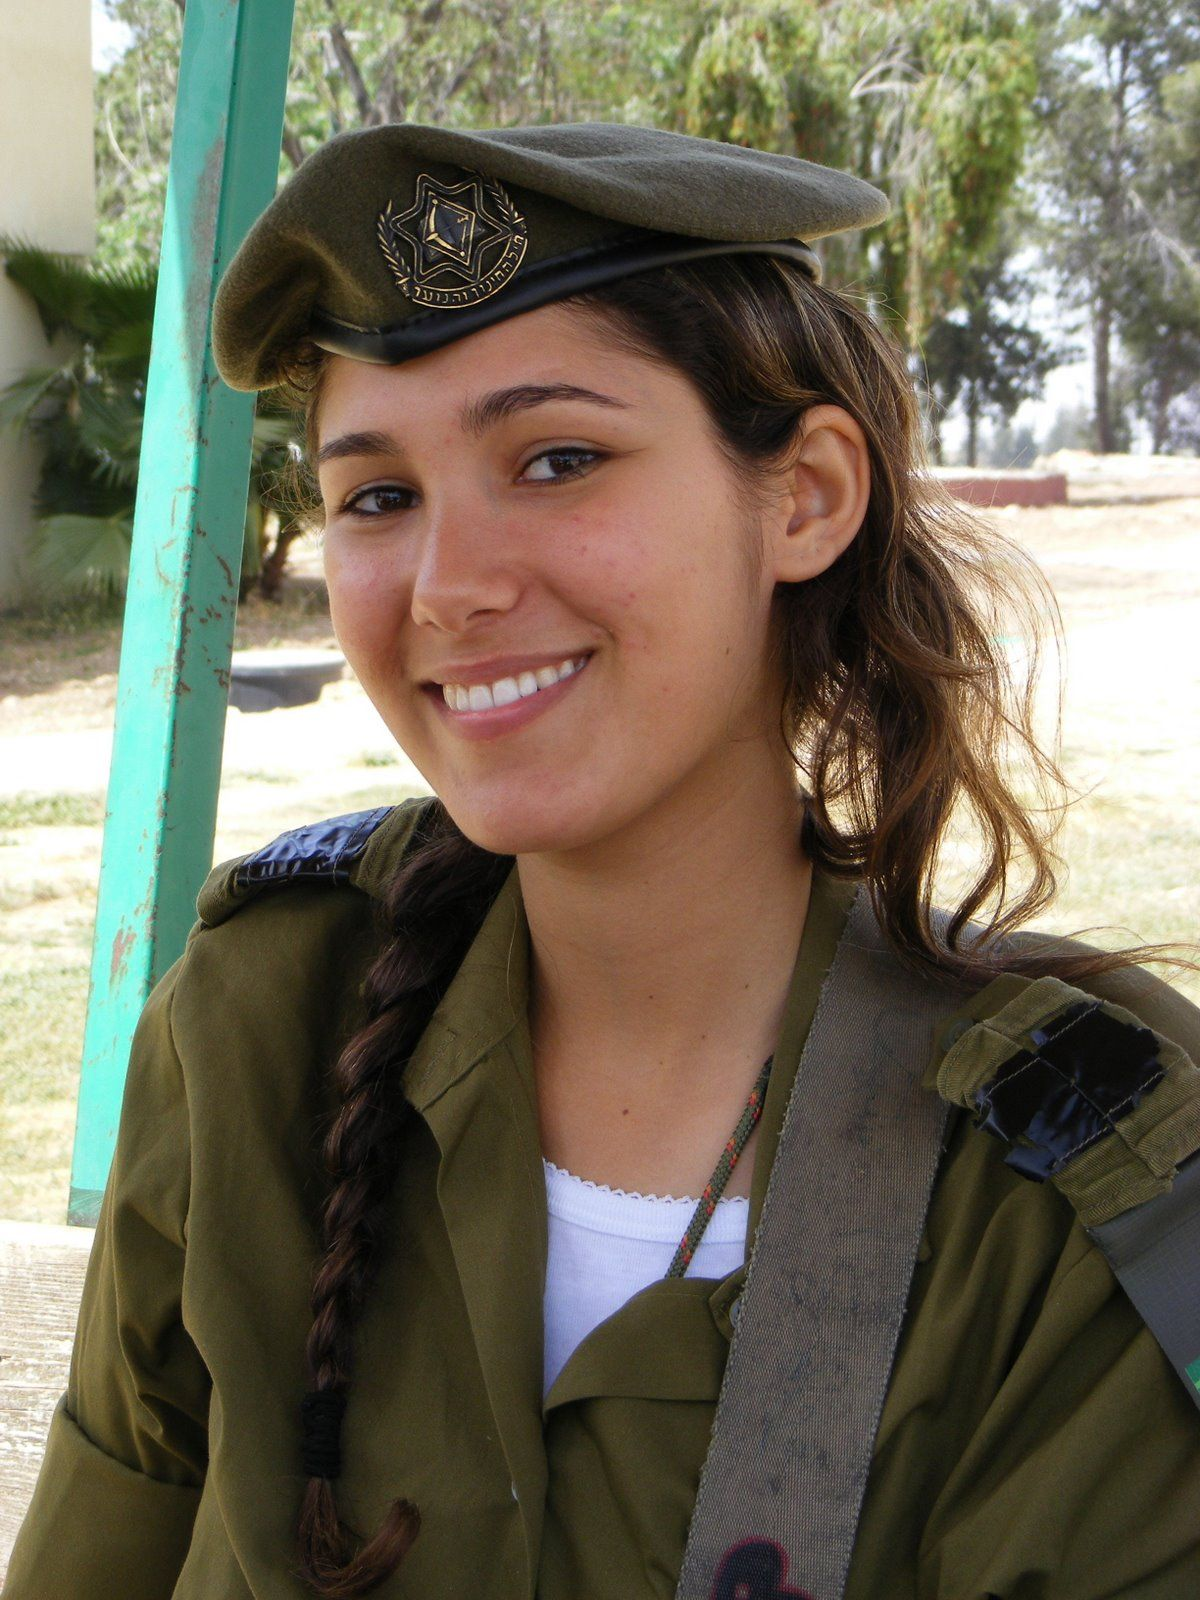 Israeli soldier | Military uniforms | Pinterest